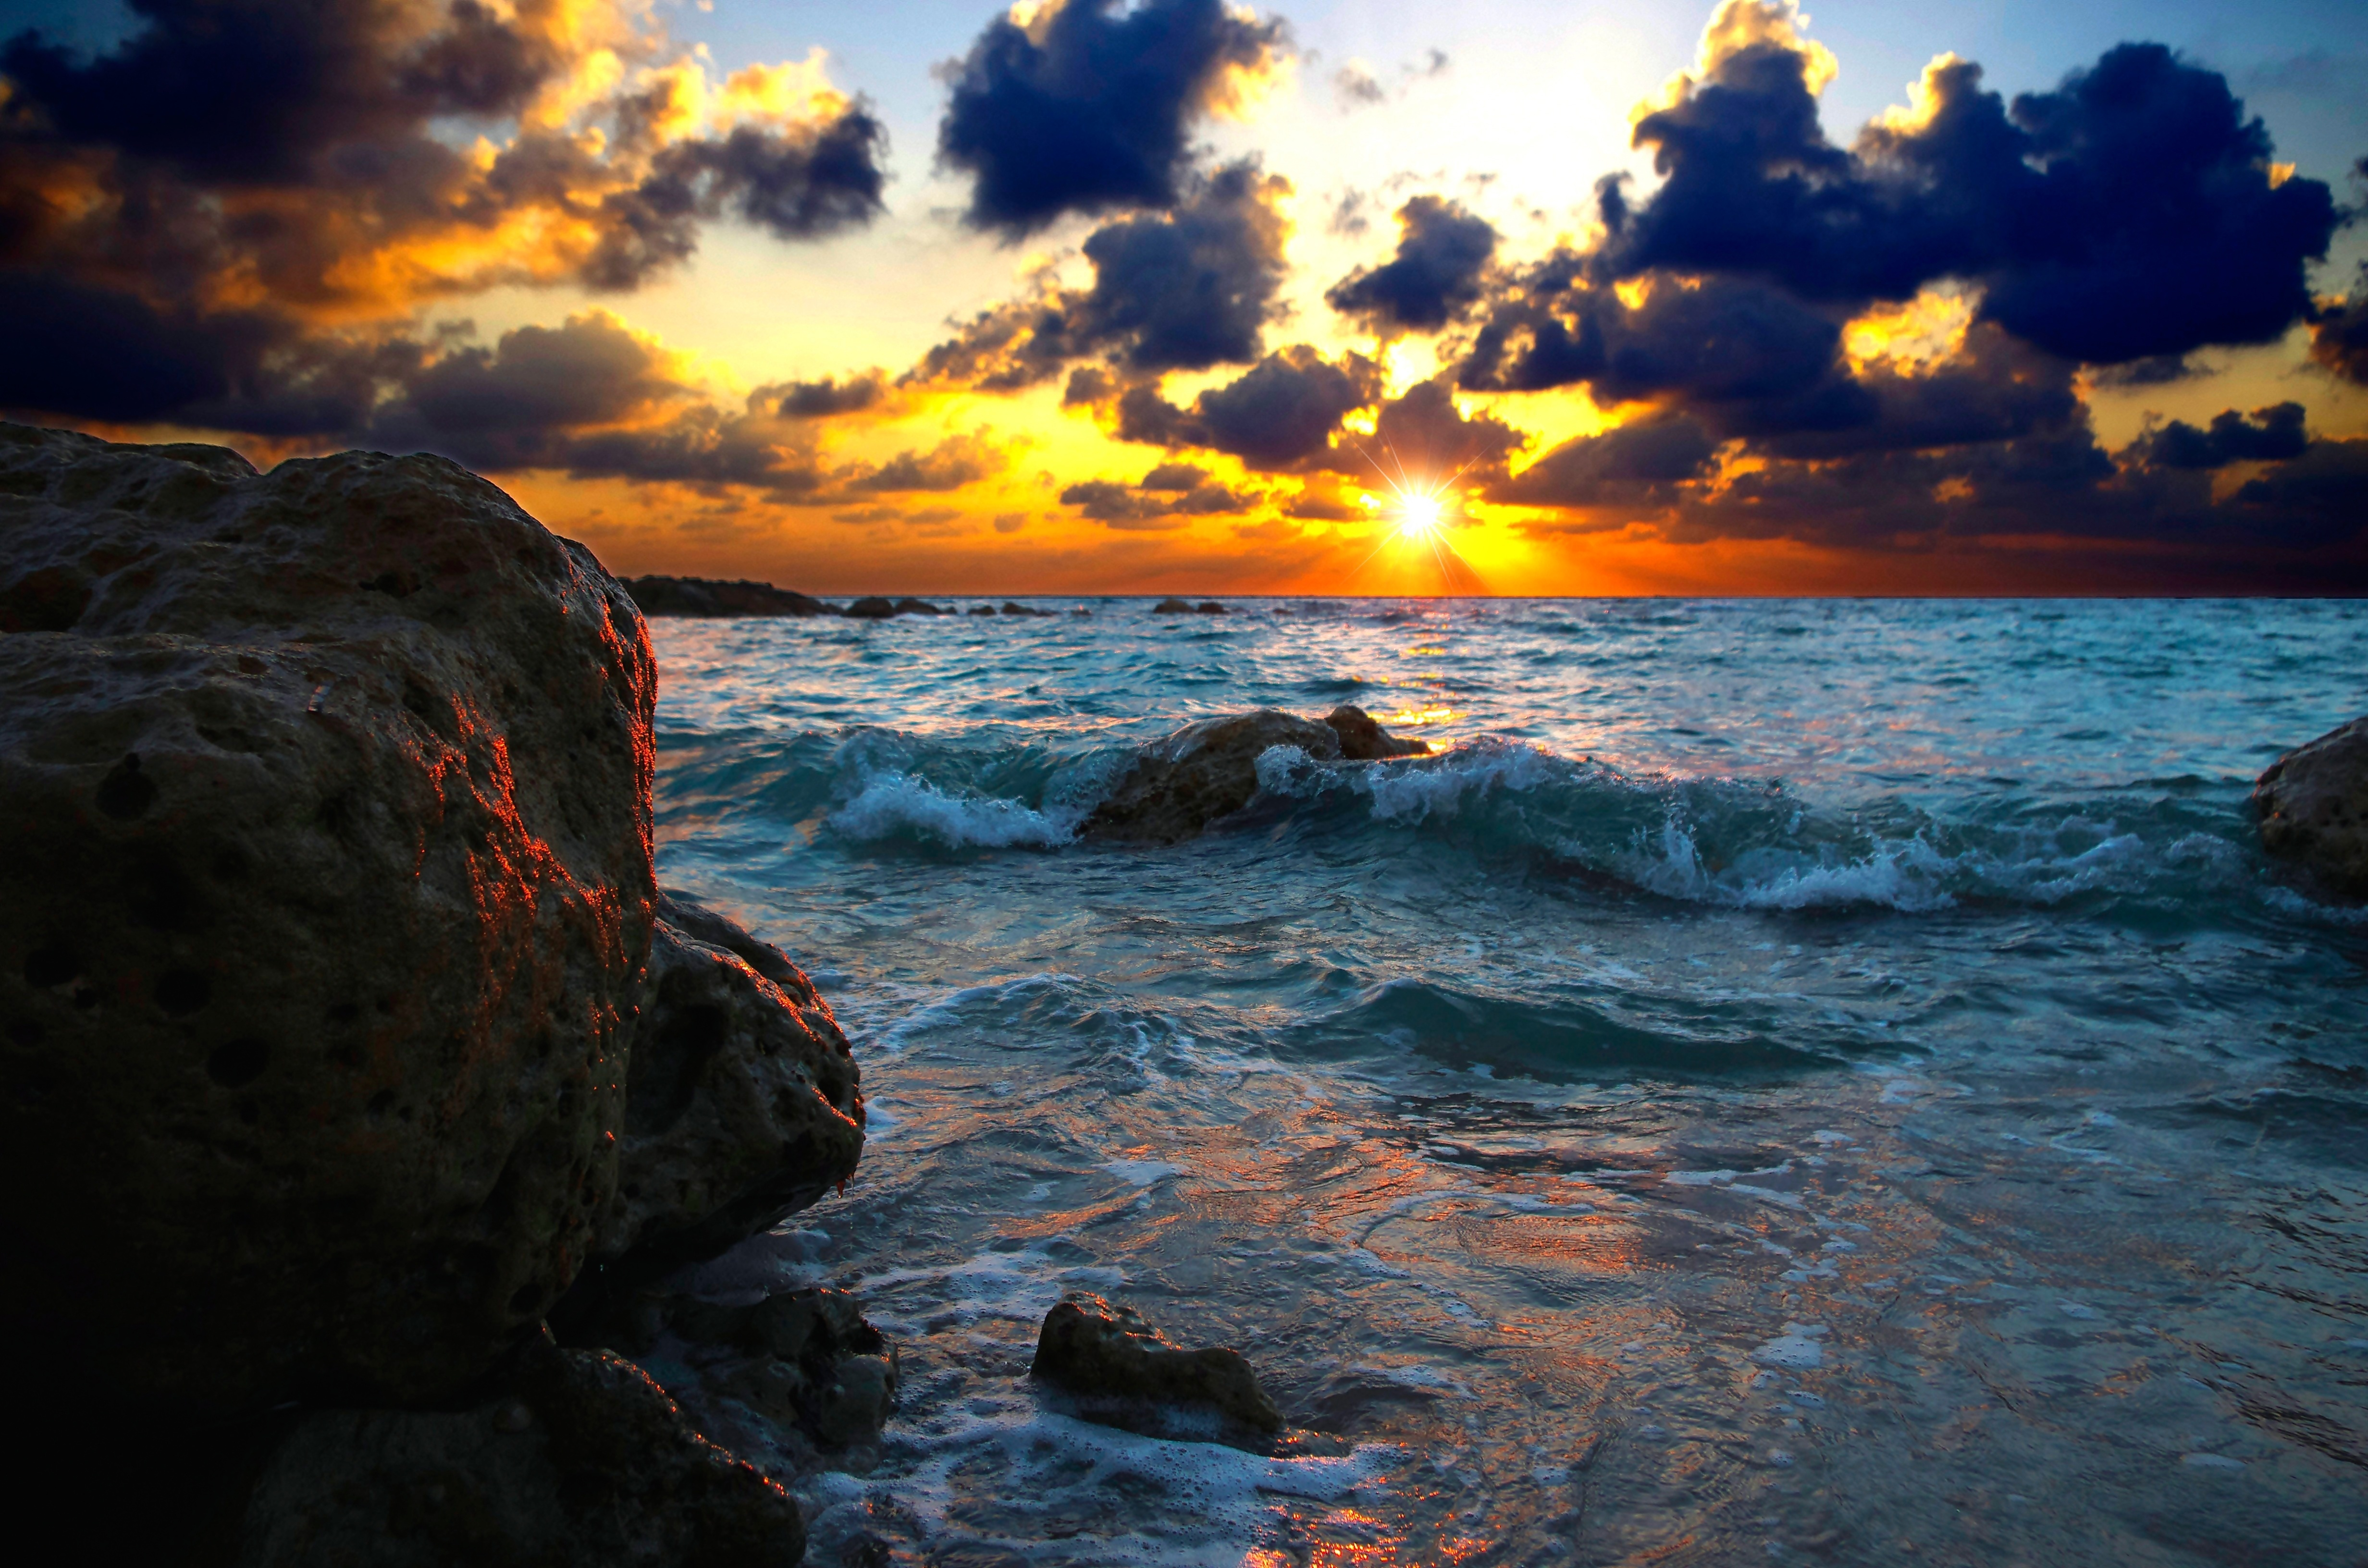 146678 download wallpaper Nature, Sea, Surf, Sunset, Stones screensavers and pictures for free